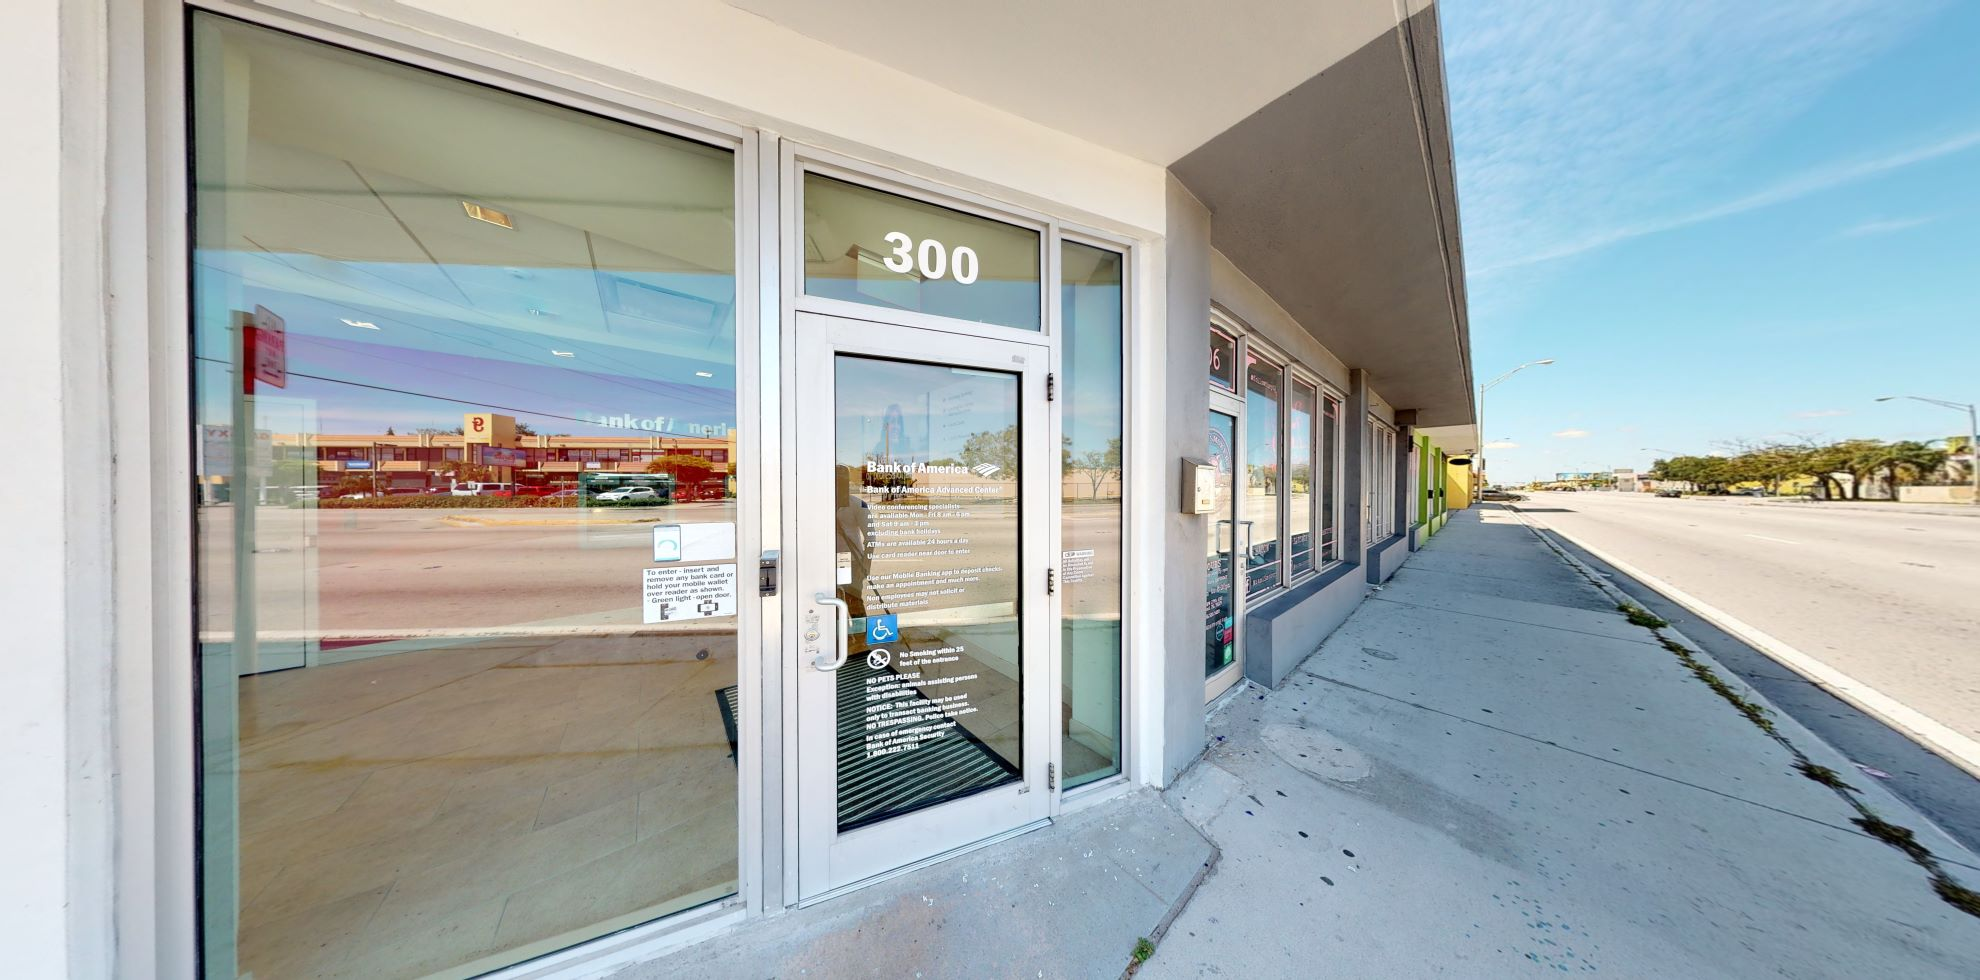 Bank of America Advanced Center with walk-up ATM | 300 NW 27th Ave, Miami, FL 33125